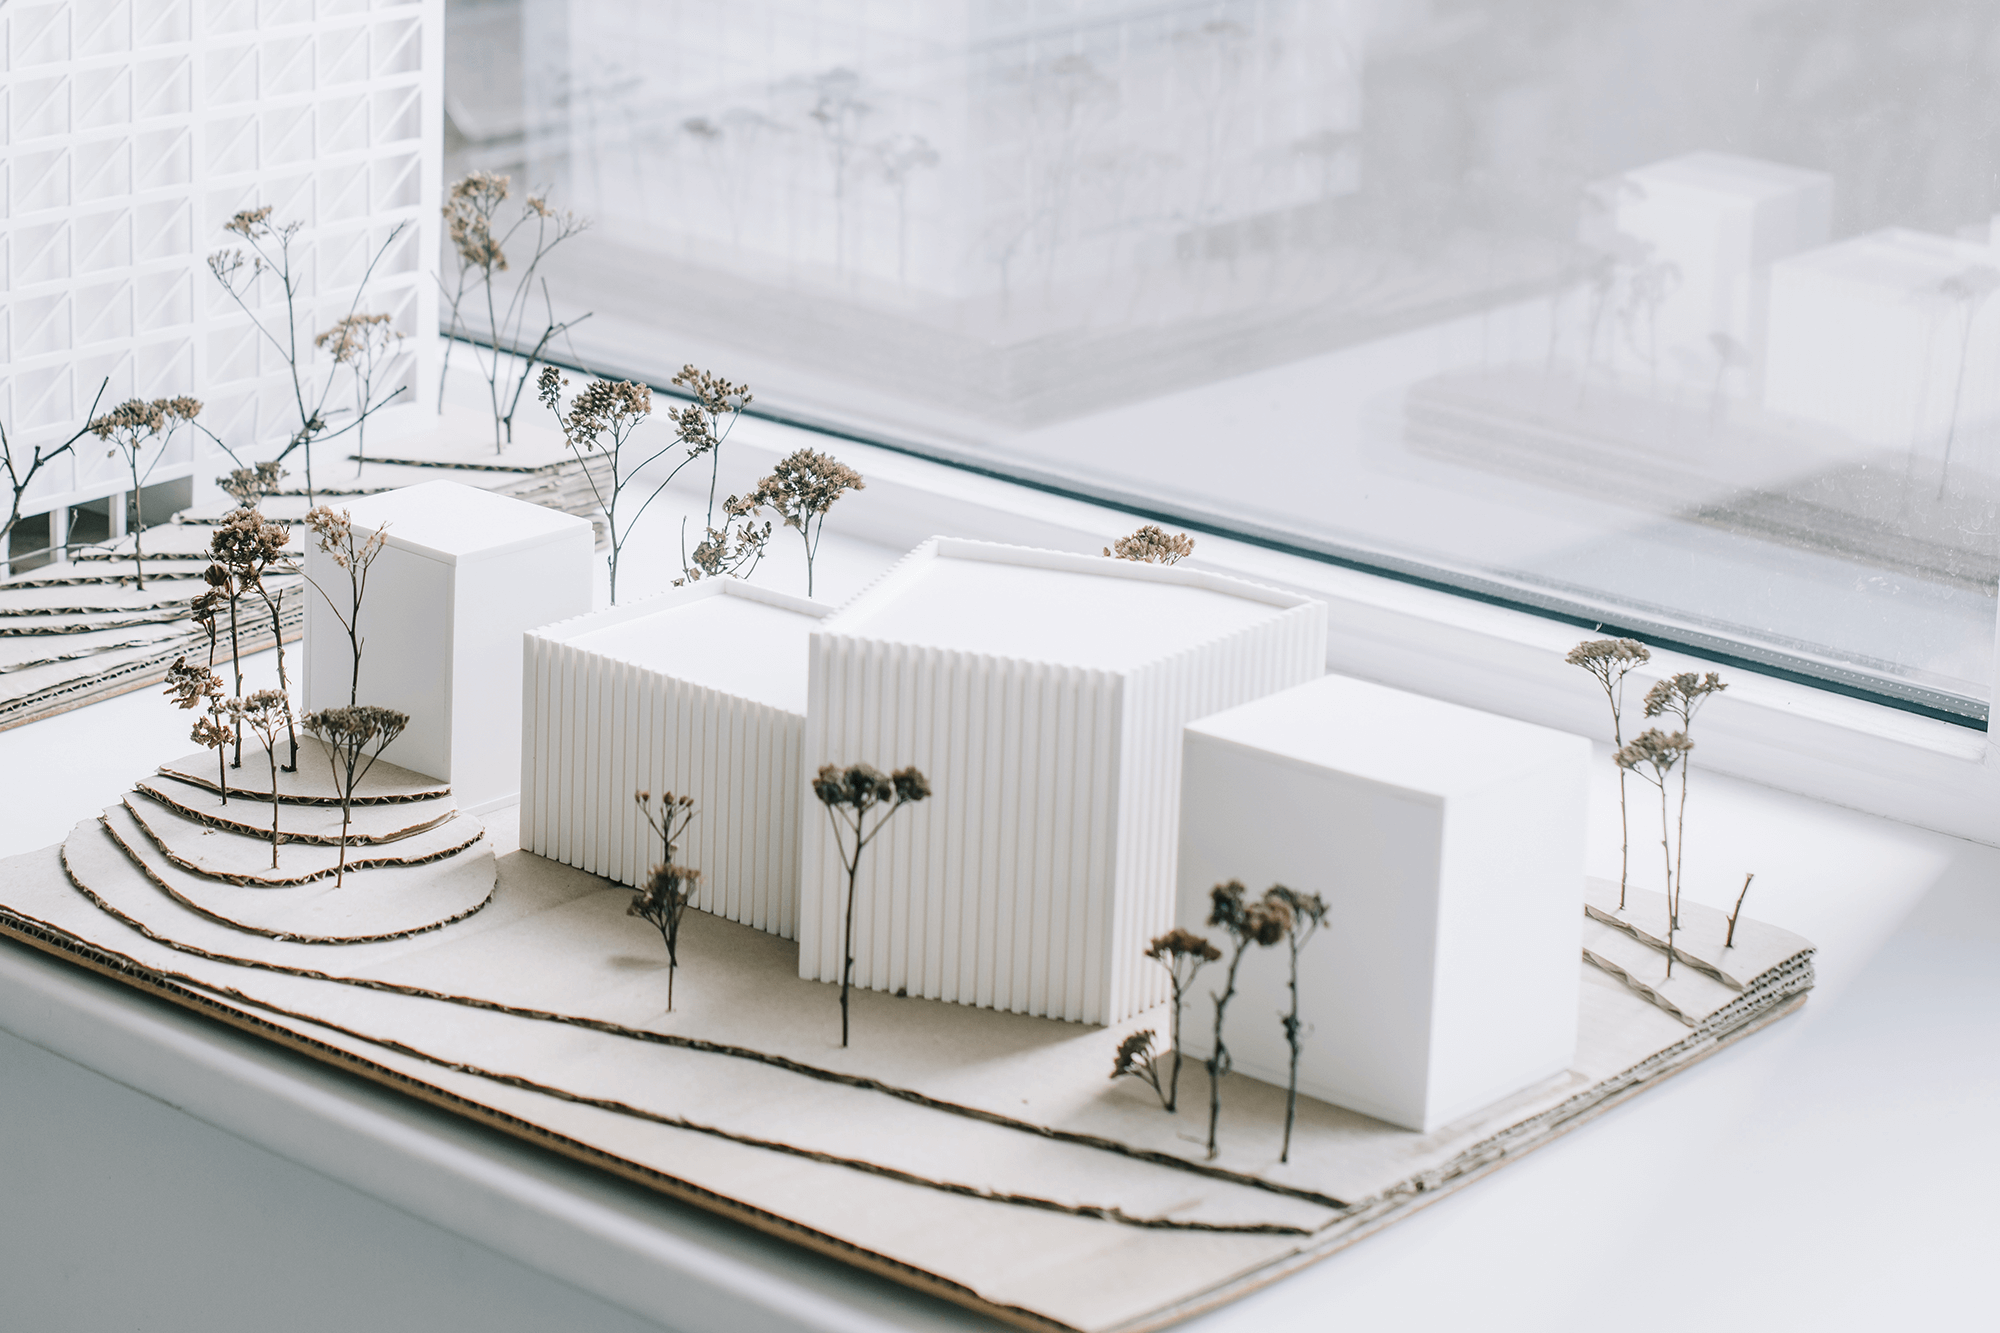 Architecture model of modern buildings.